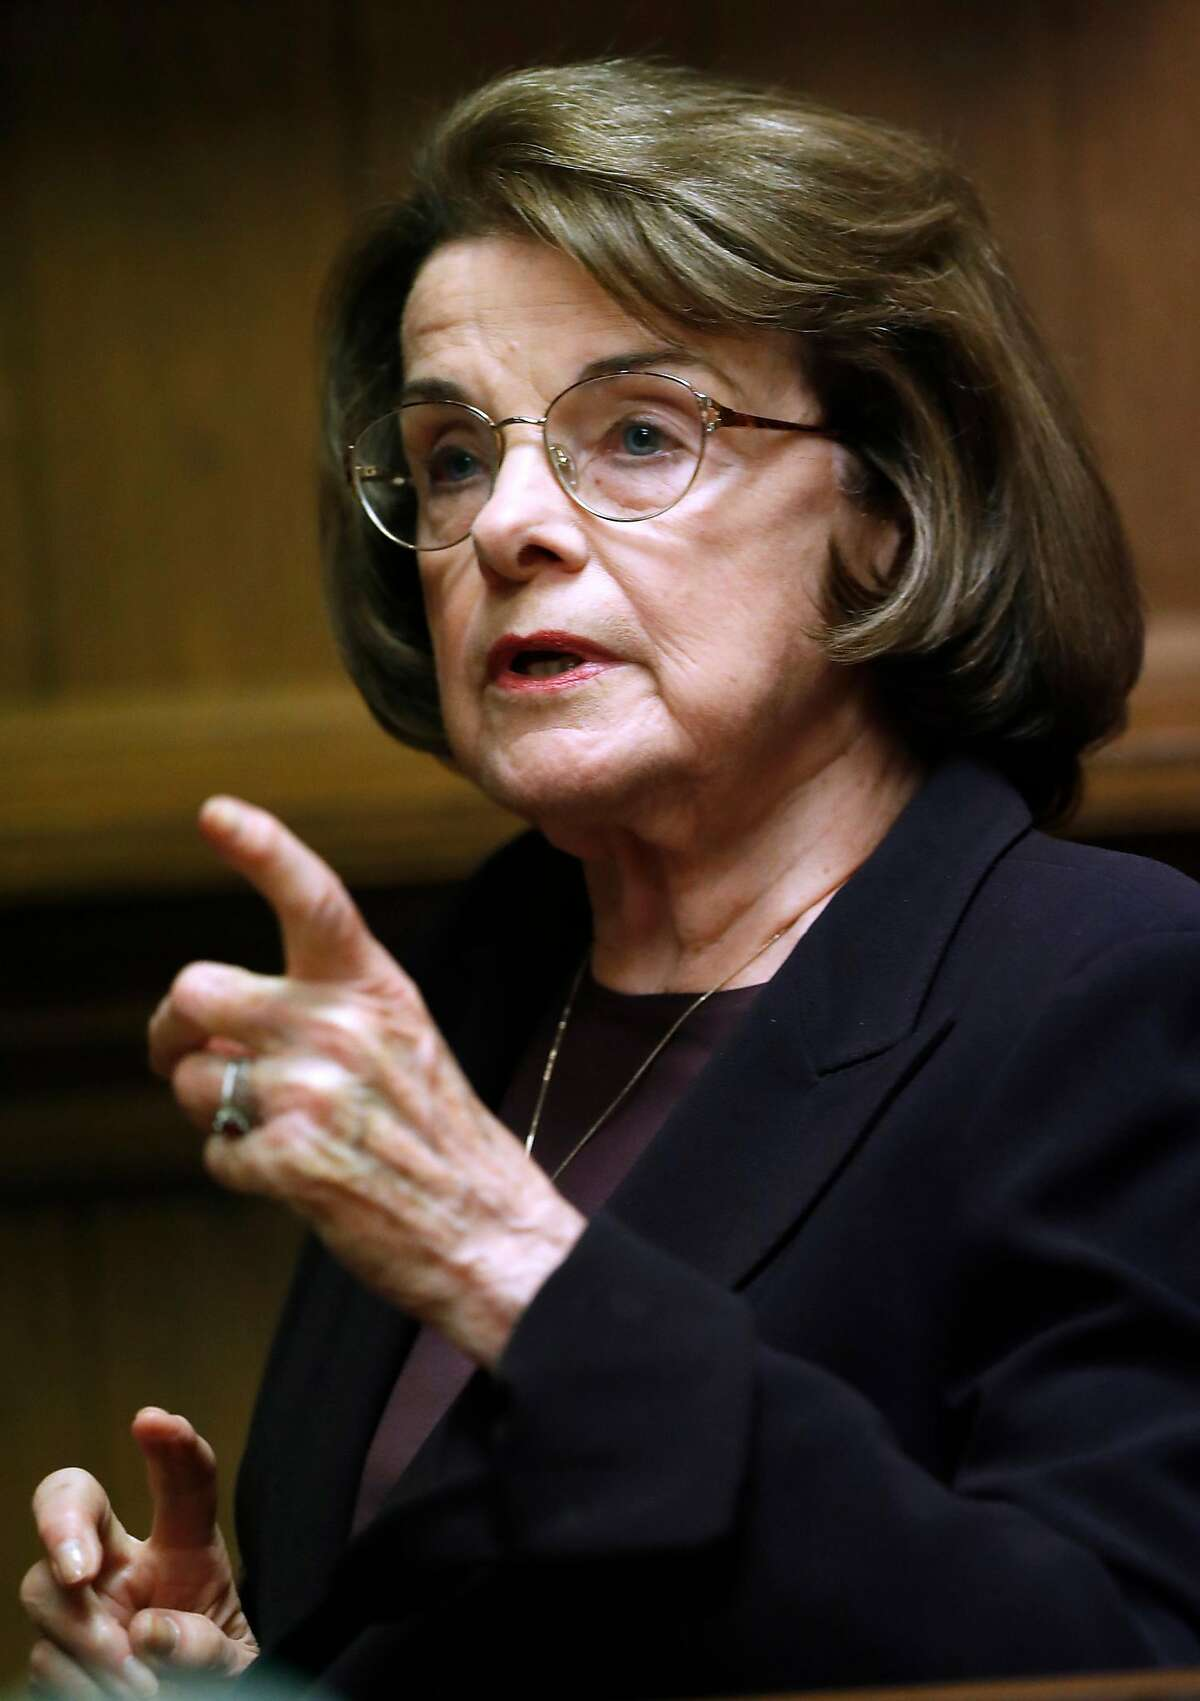 United States' Senator Dianne Feinstein, seen here in an April 2018 picture, has decided not to seek to retain her position as the top Democrat on the Senate Judiciary Committee.